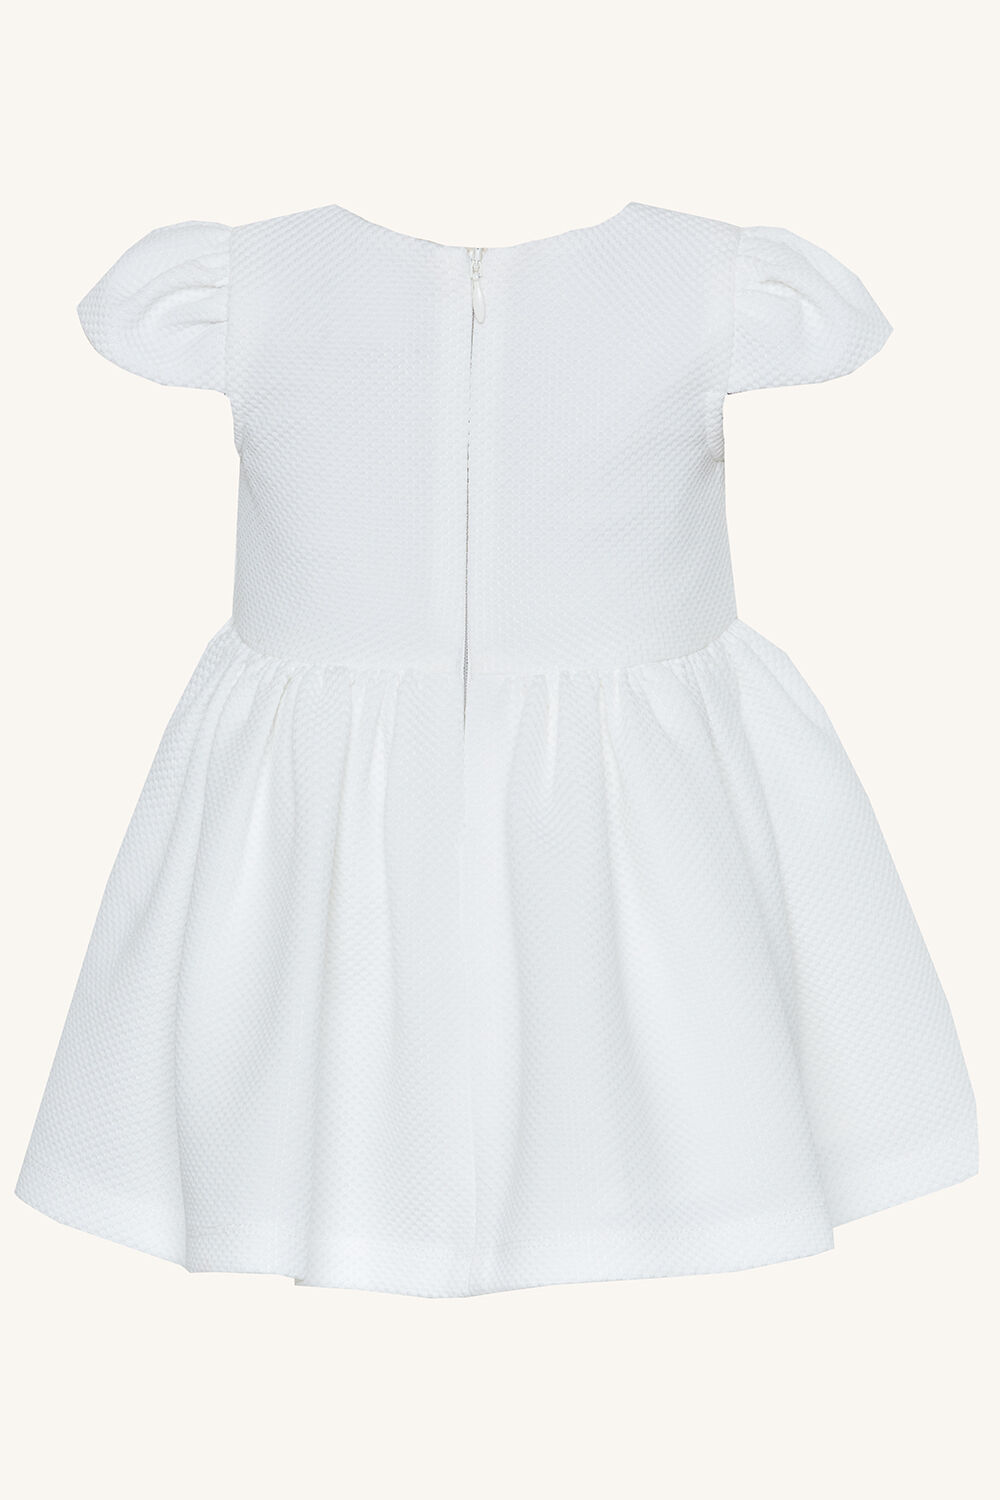 BABY GIRL POLLY BOW DRESS in colour CLOUD DANCER